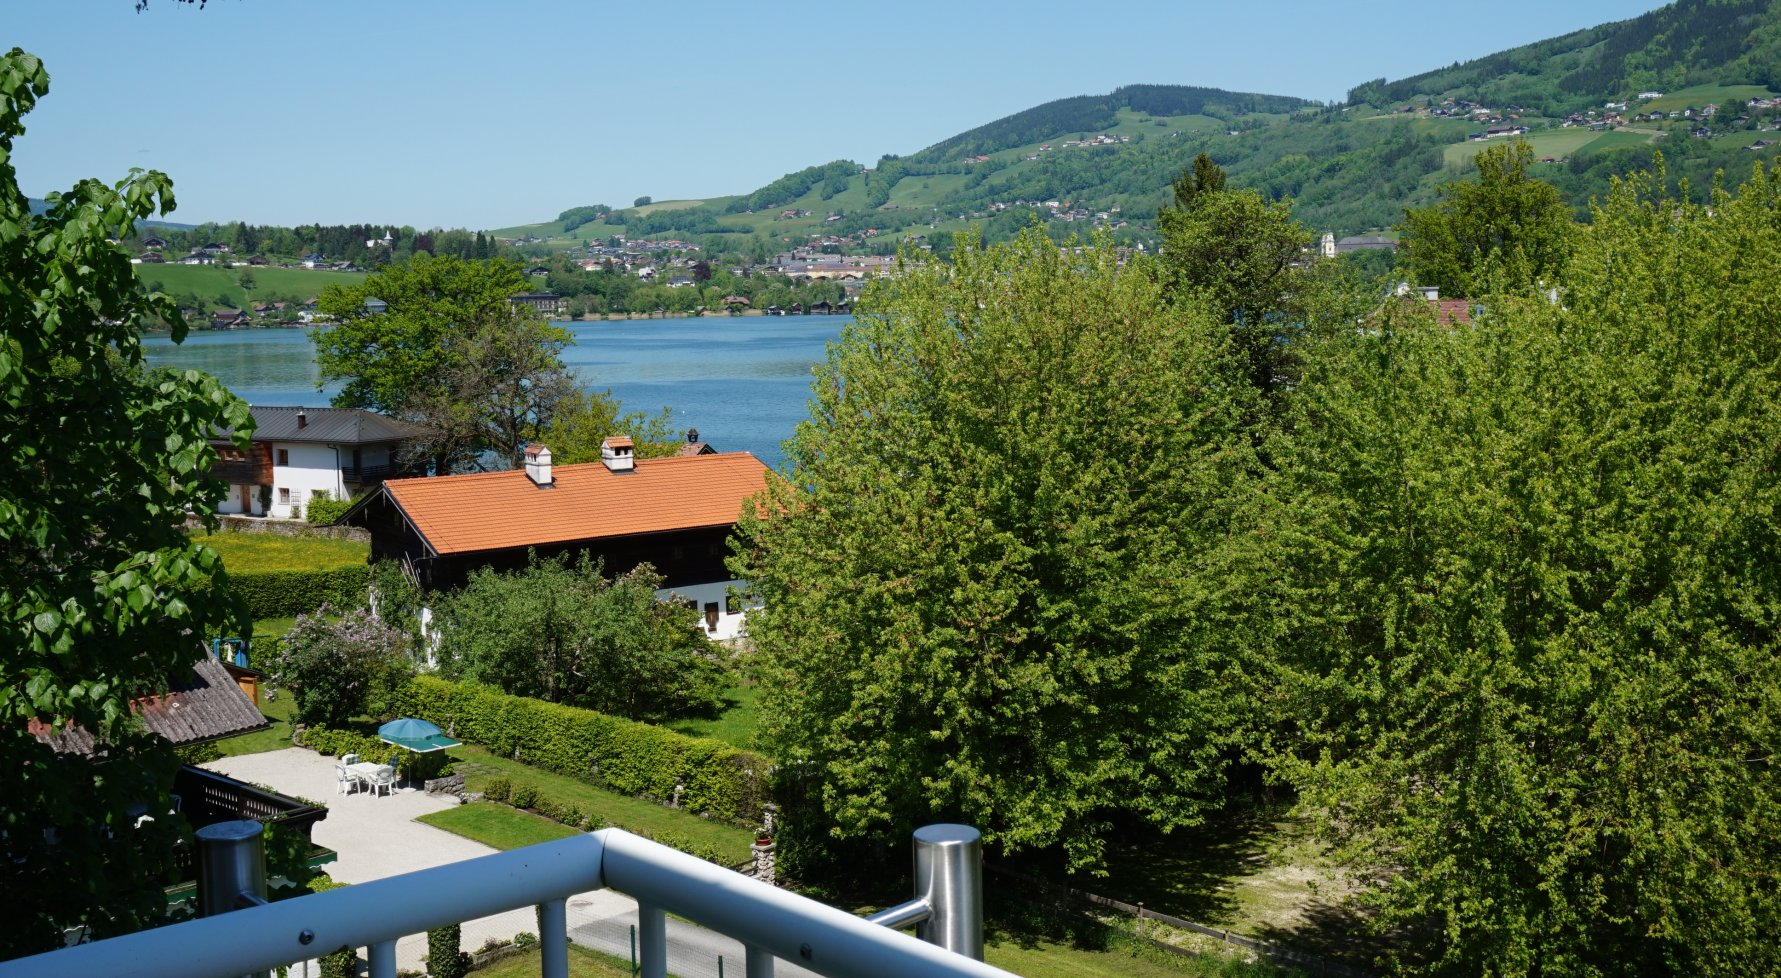 Property in 5310 Mondsee: Perfect villa with an unobstructed lake view! - picture 1